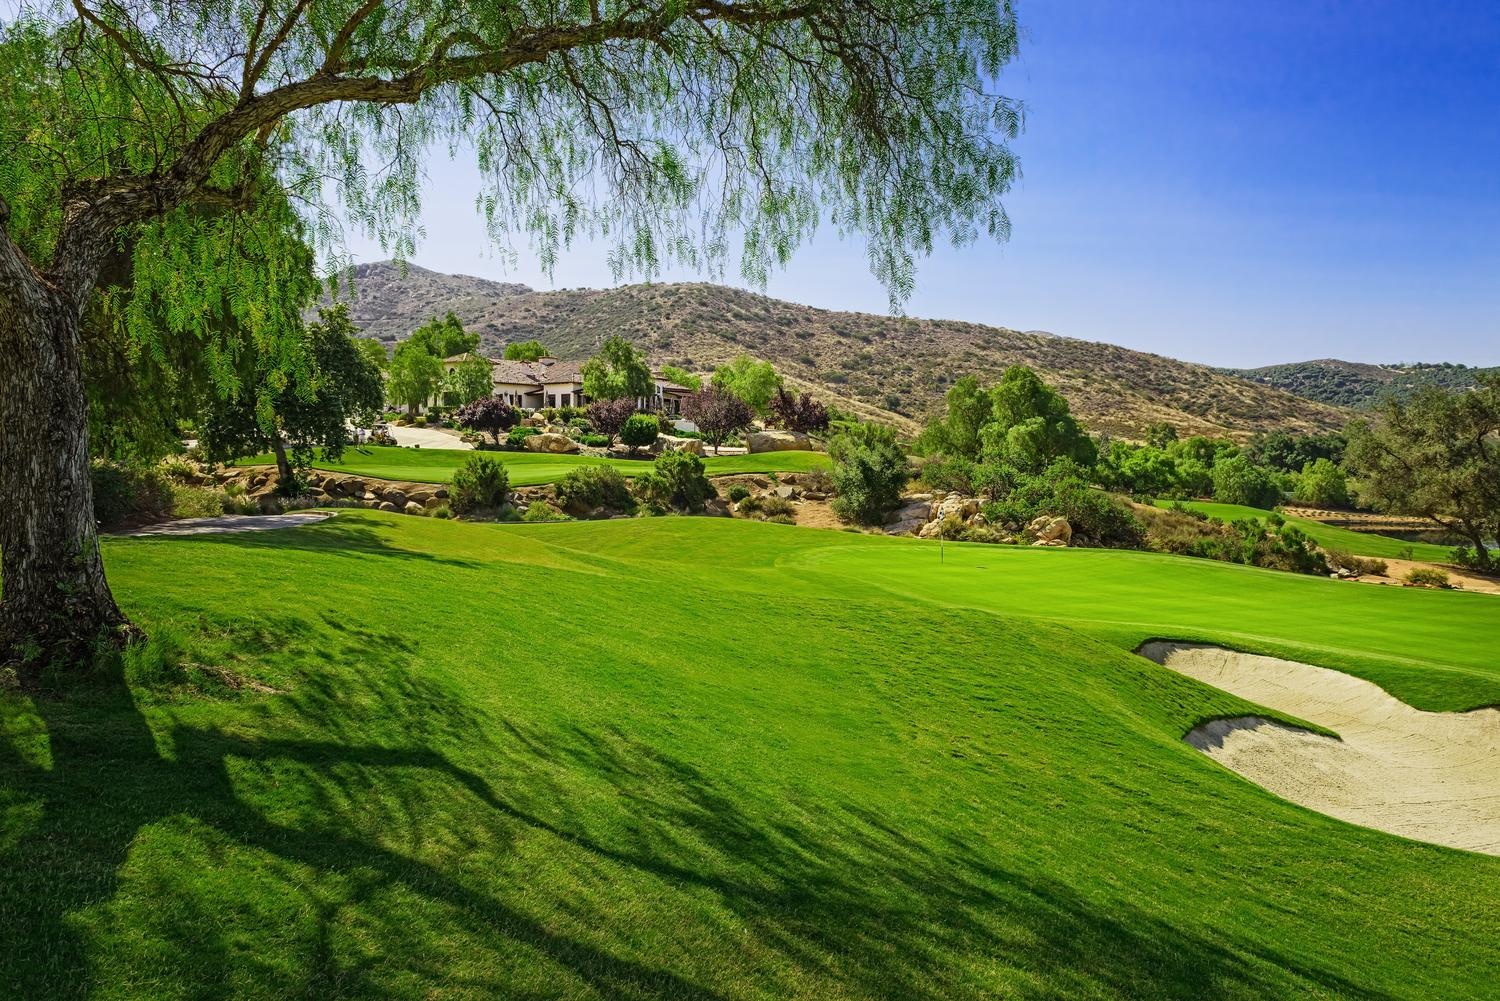 Hole 18 with clubhouse resize.jpg